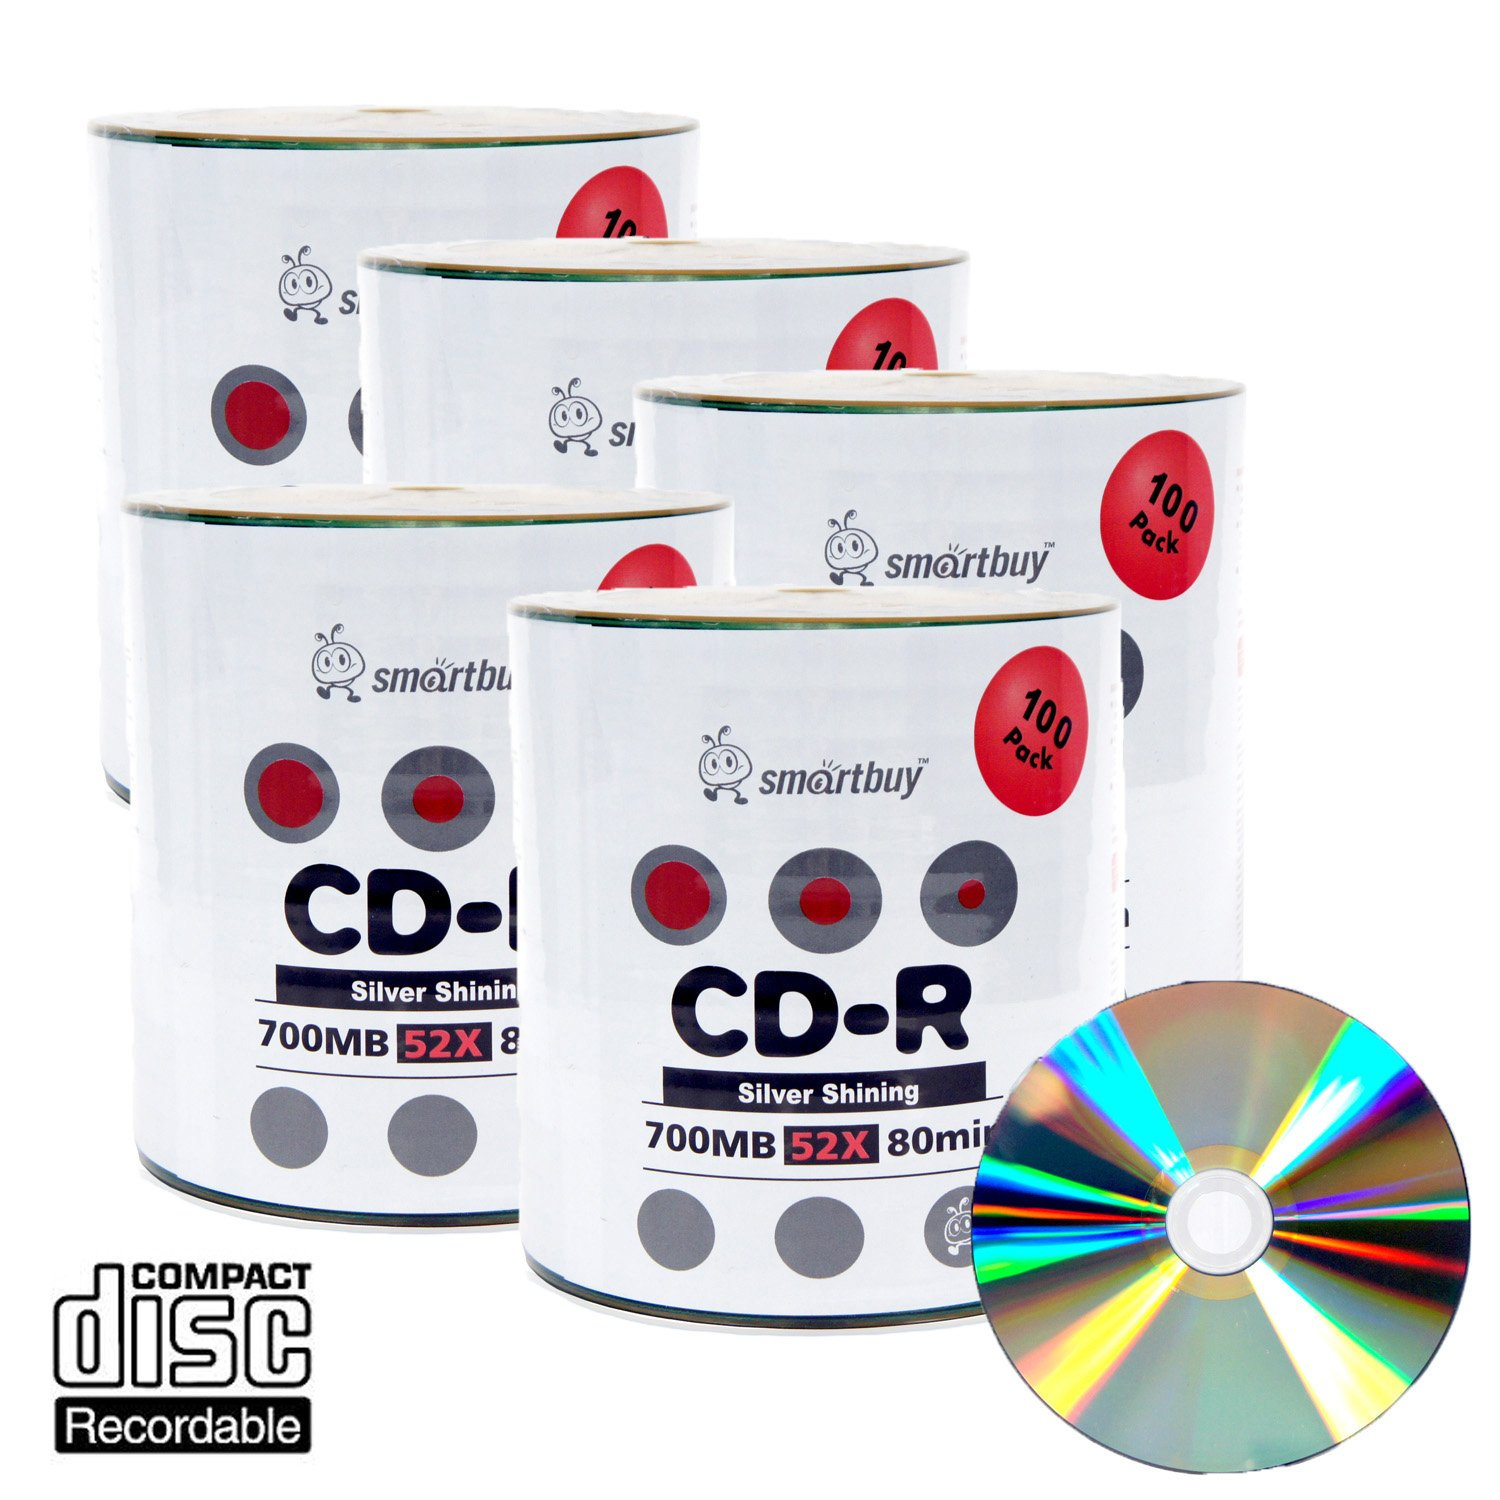 Smart Buy Shiny Silver Top CD-R 500 Pack 700mb 52x Blank Recordable Discs, 500 Disc, 500pk